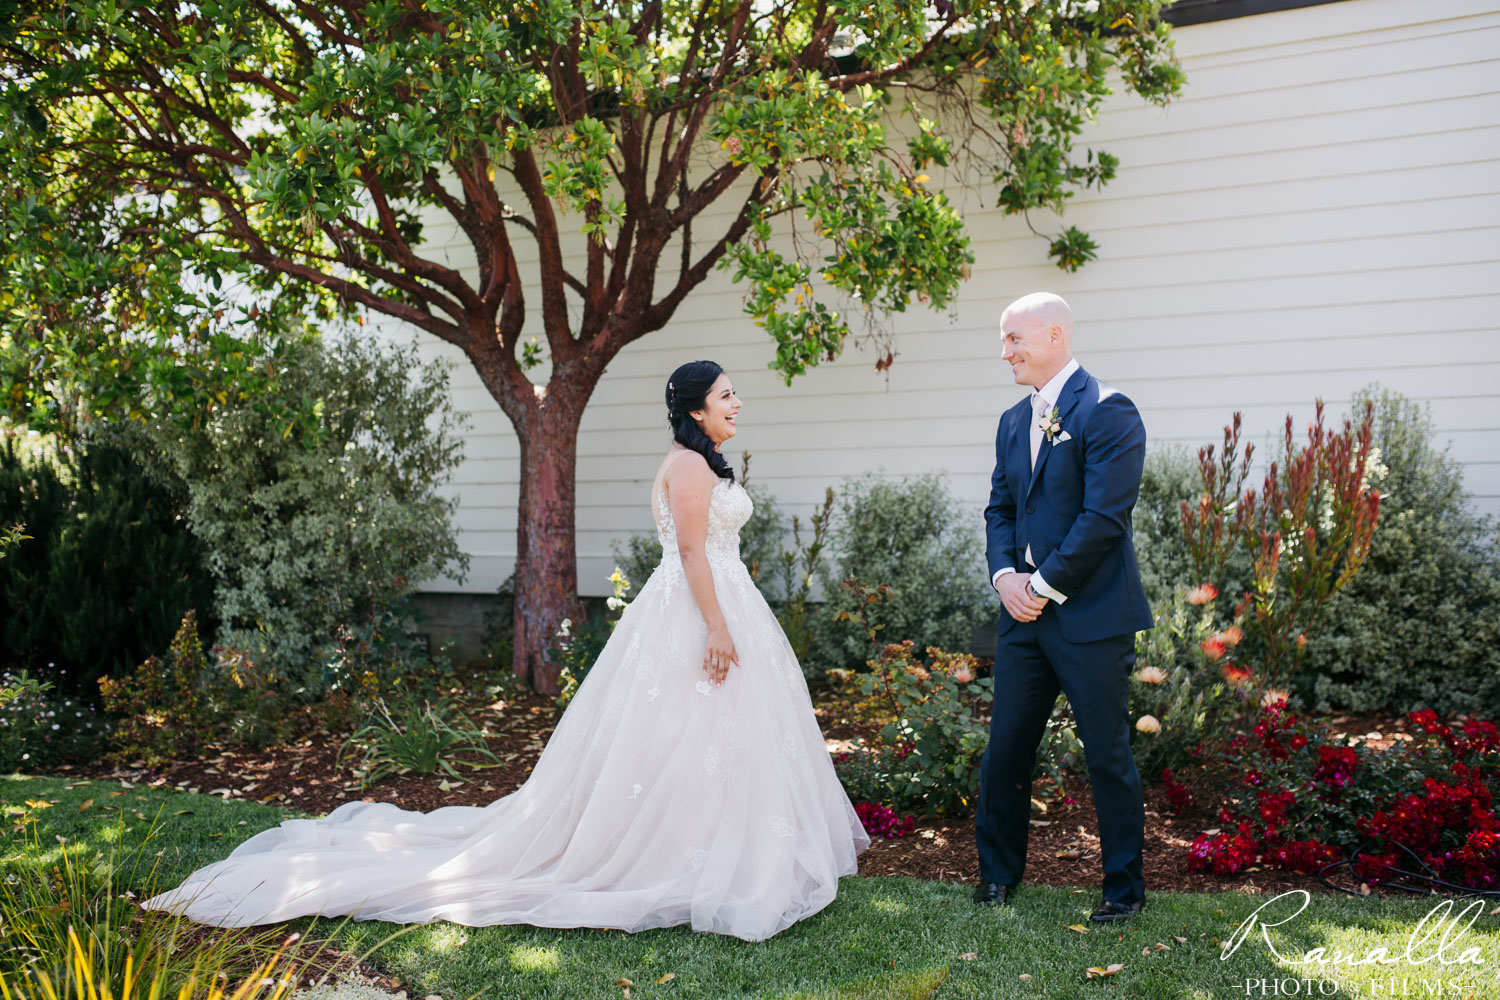 Cass House Wedding Photos-san luis obispo wedding photographer-Bride and Groom